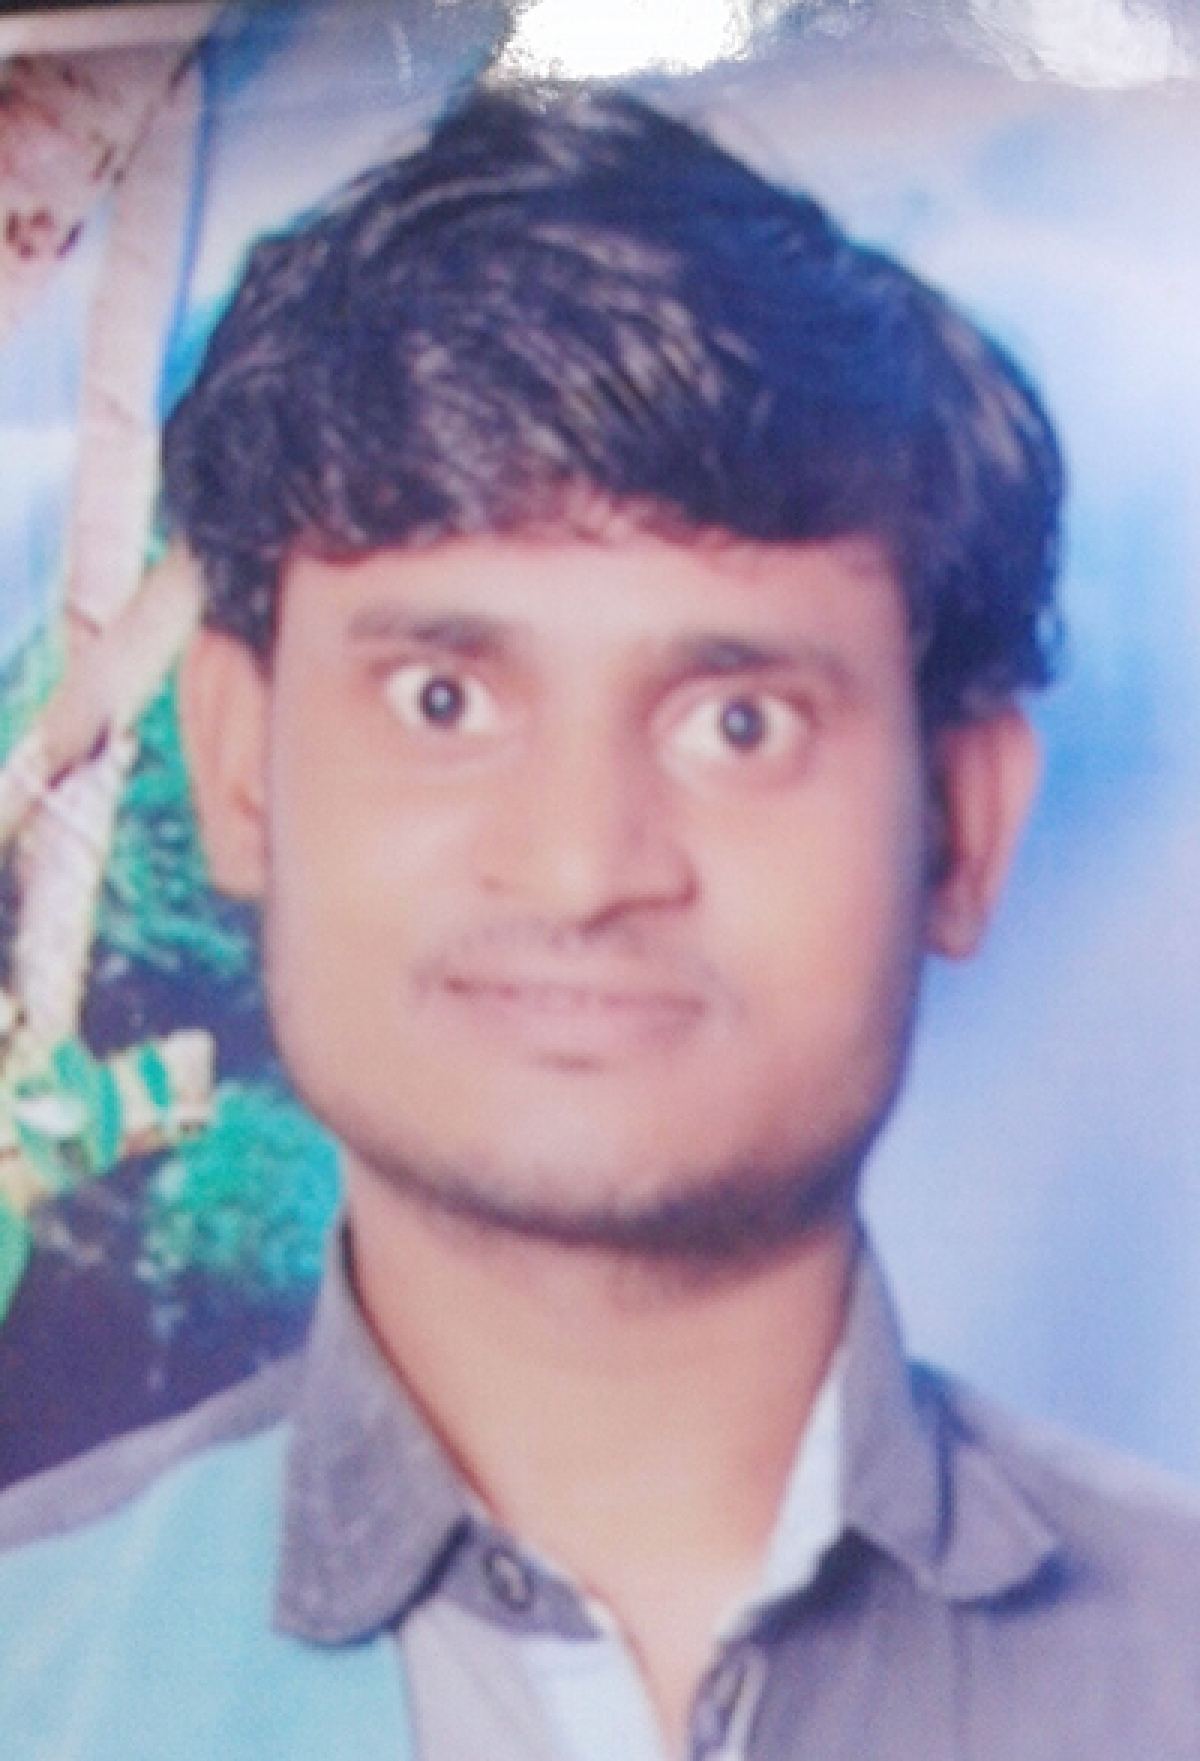 28-yr-old worker electrocuted at factory in Bhayandar